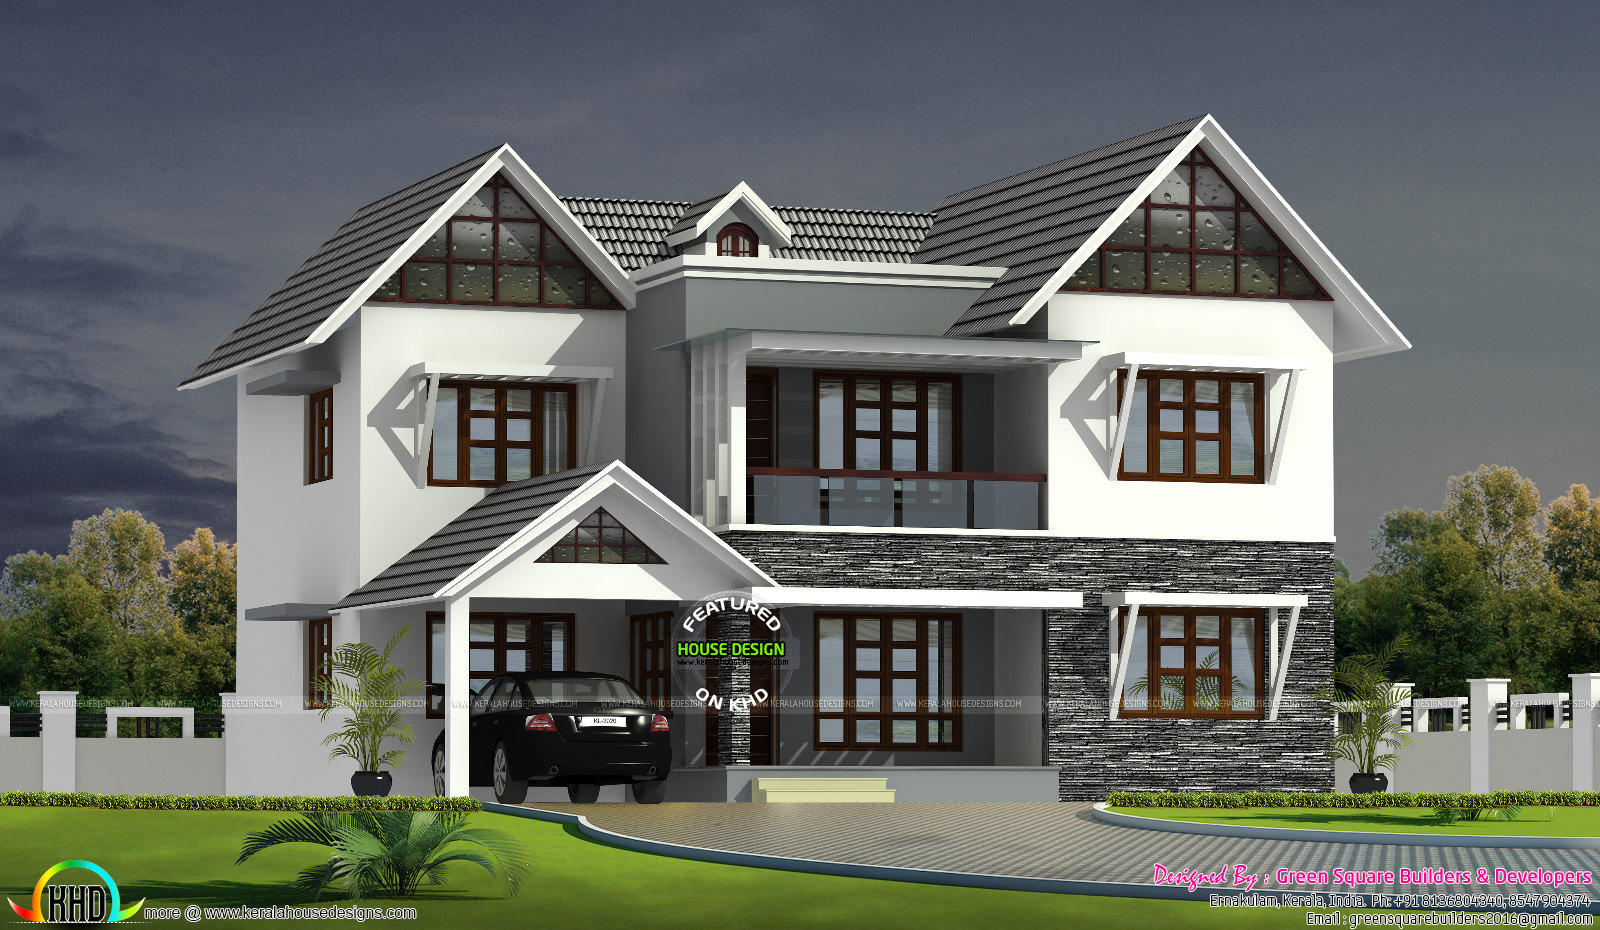 Shingles Roof Colonial Touch Home Kerala Home Design Bloglovin - Colonial style home design in kerala